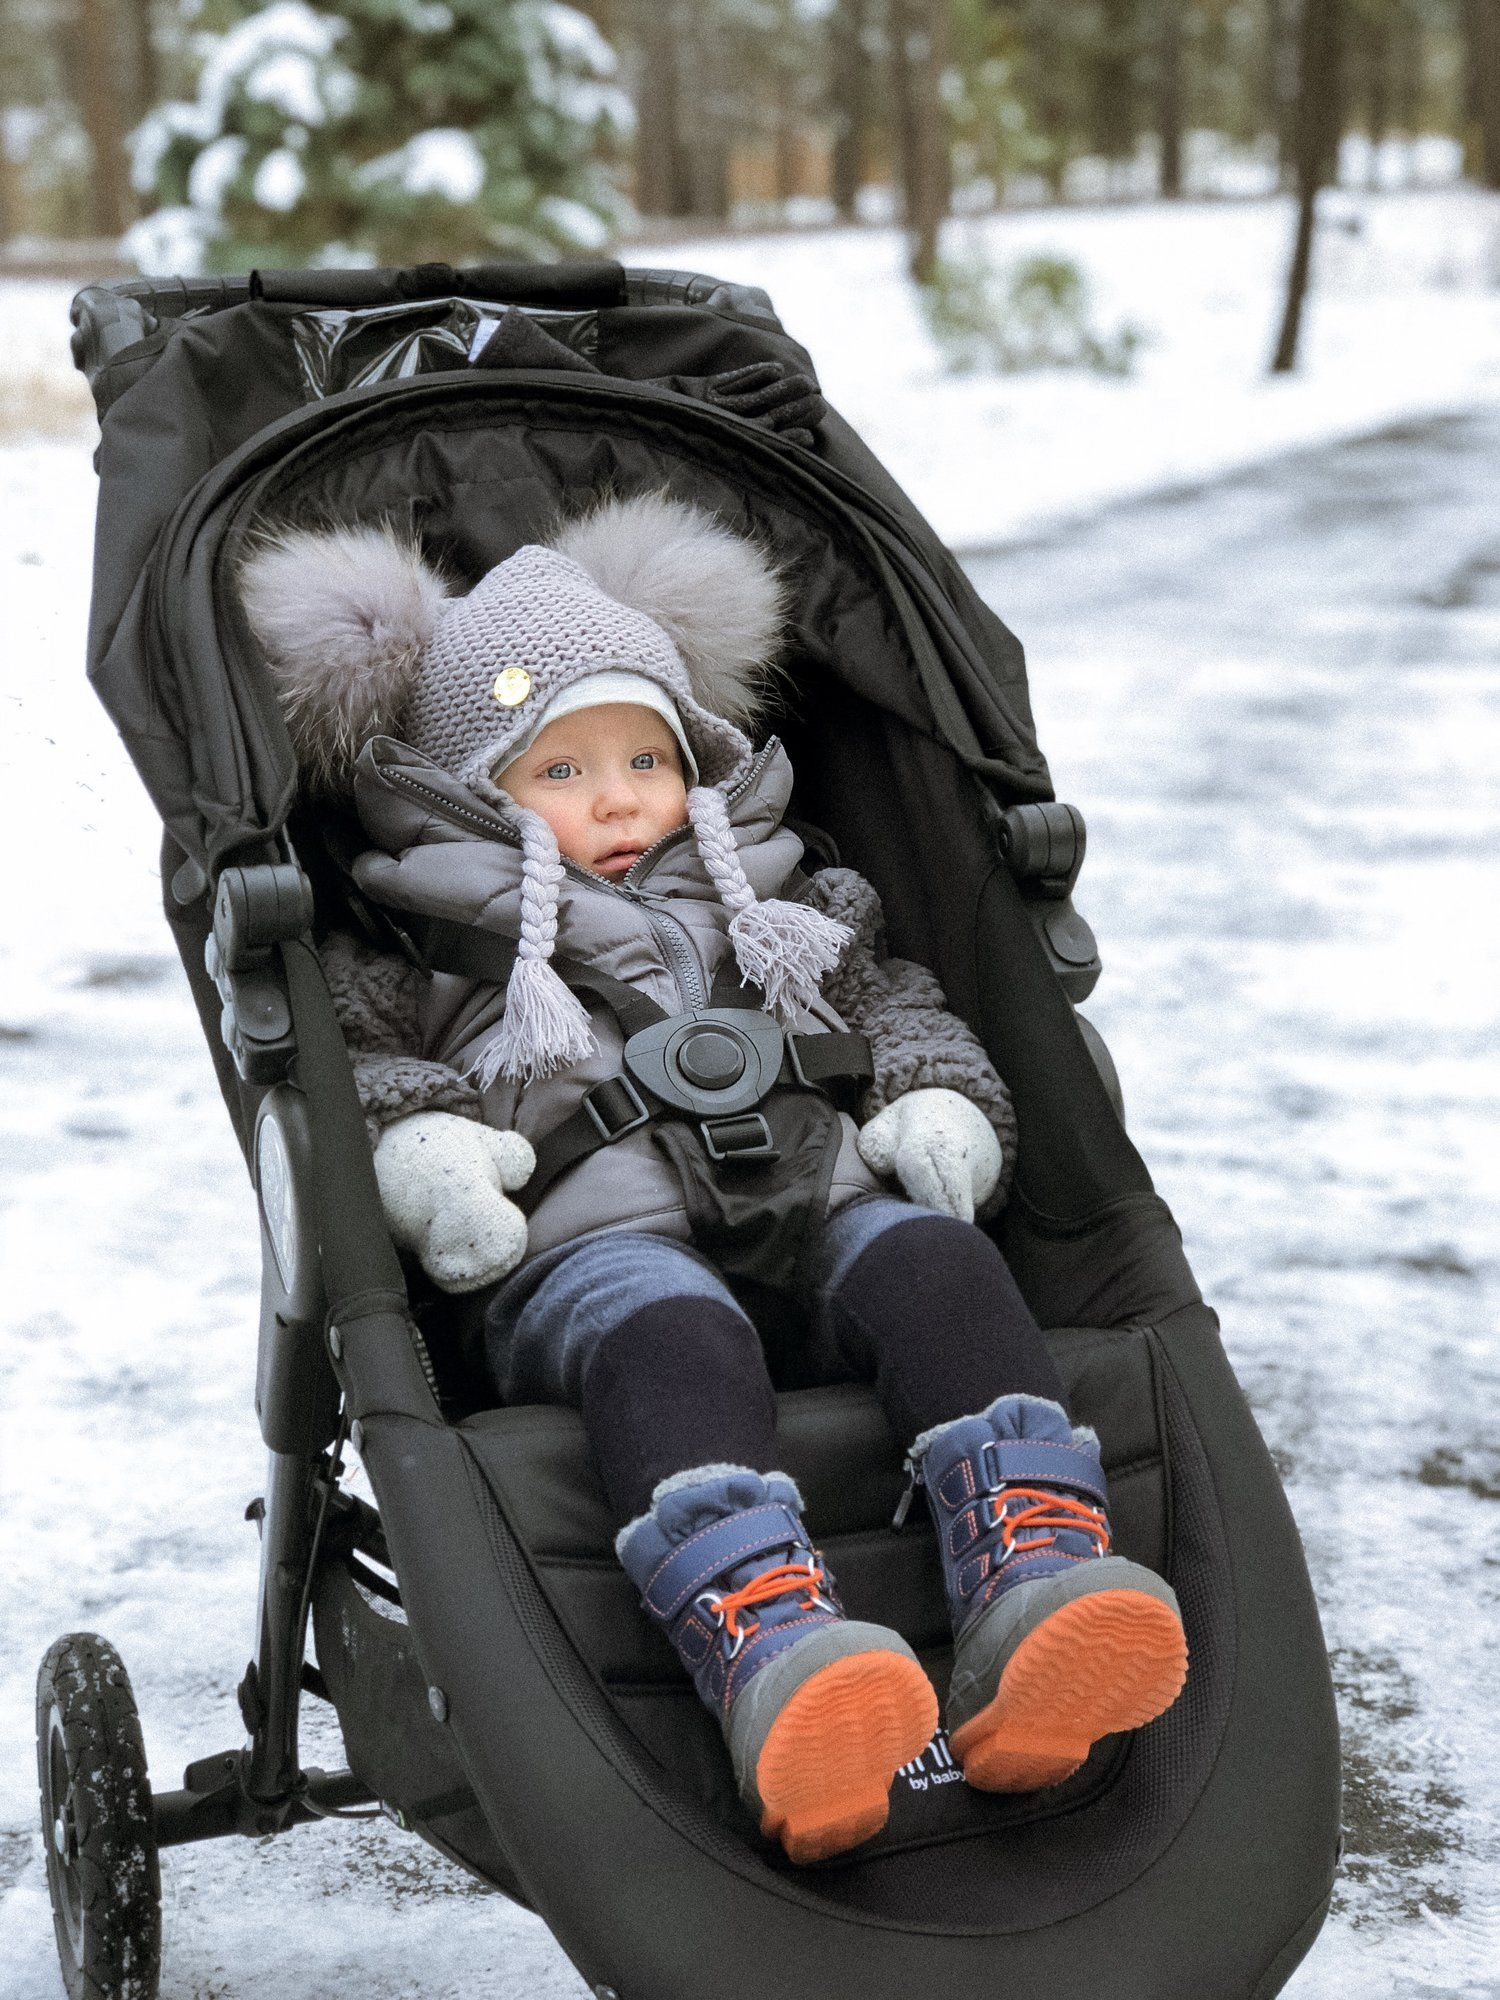 Baby Jogger City Mini GT stroller in the snow. Miloves hat